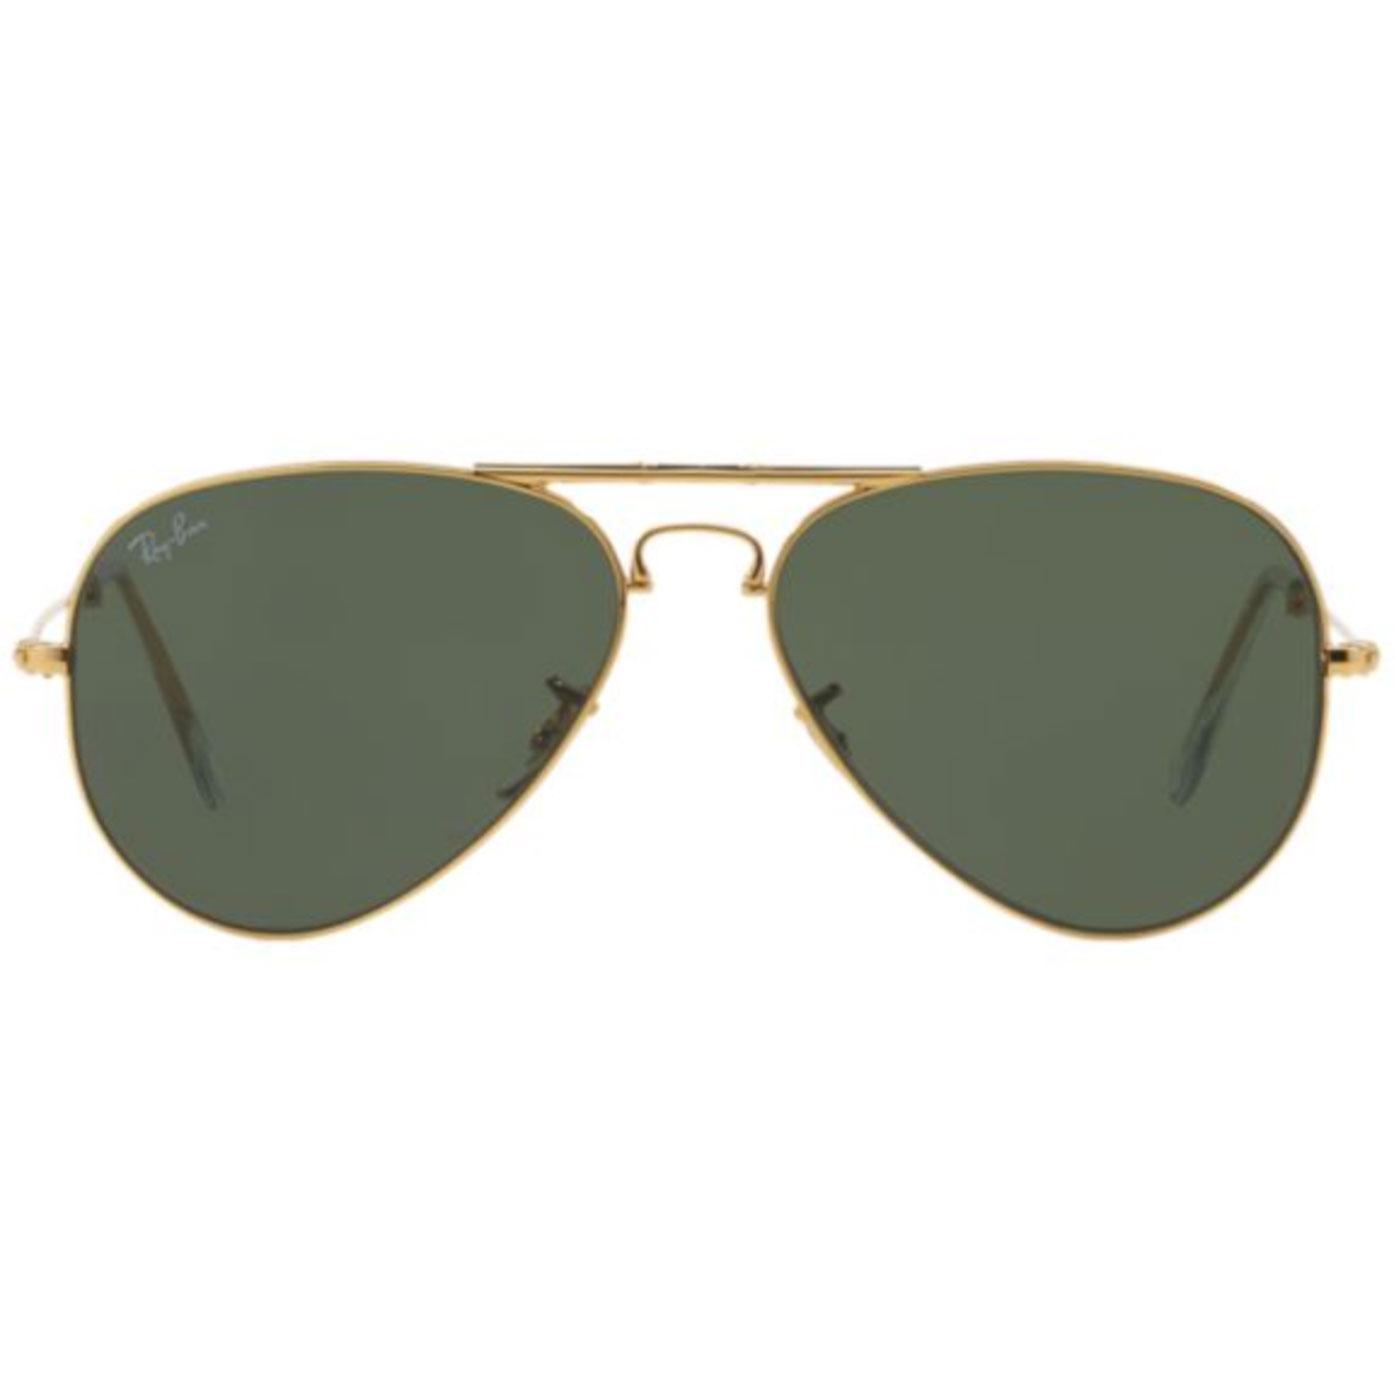 22e41016aa Ray-Ban 75th Anniversary Retro Mod Folding Aviator Sunglasses